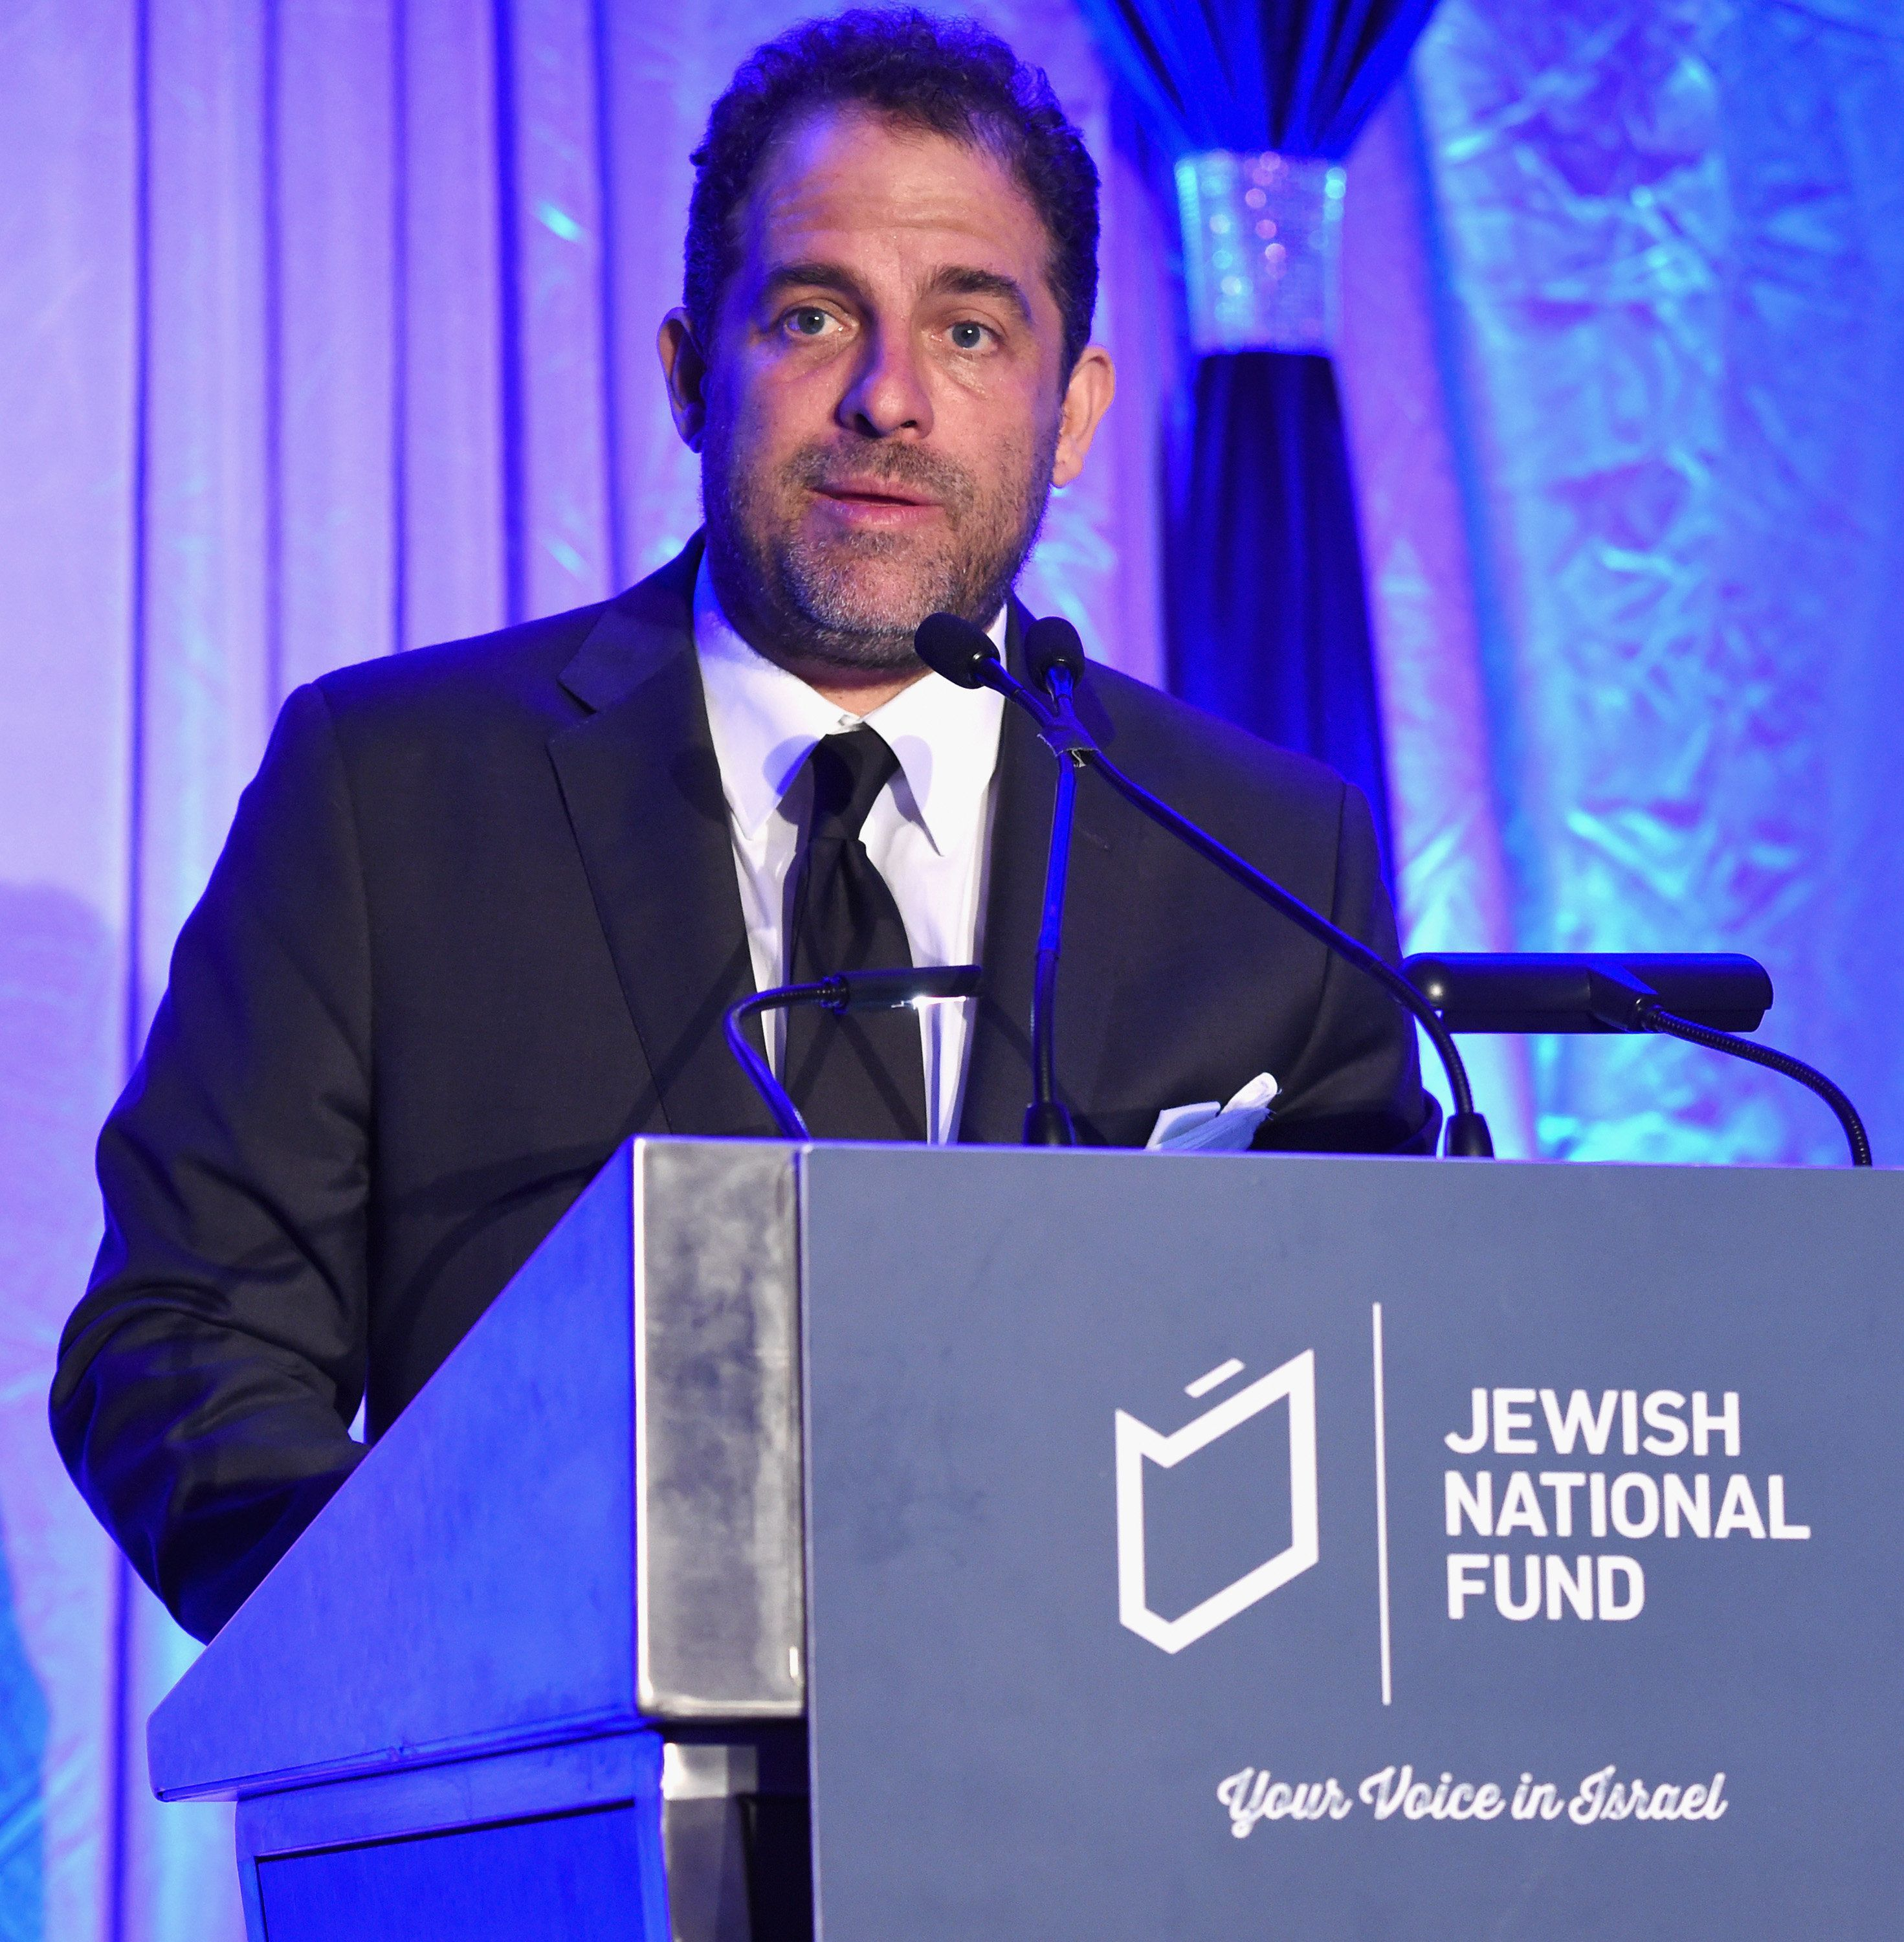 6 Women Accuse Hollywood Producer Brett Ratner Of Sexual Harassment Or Misconduct: